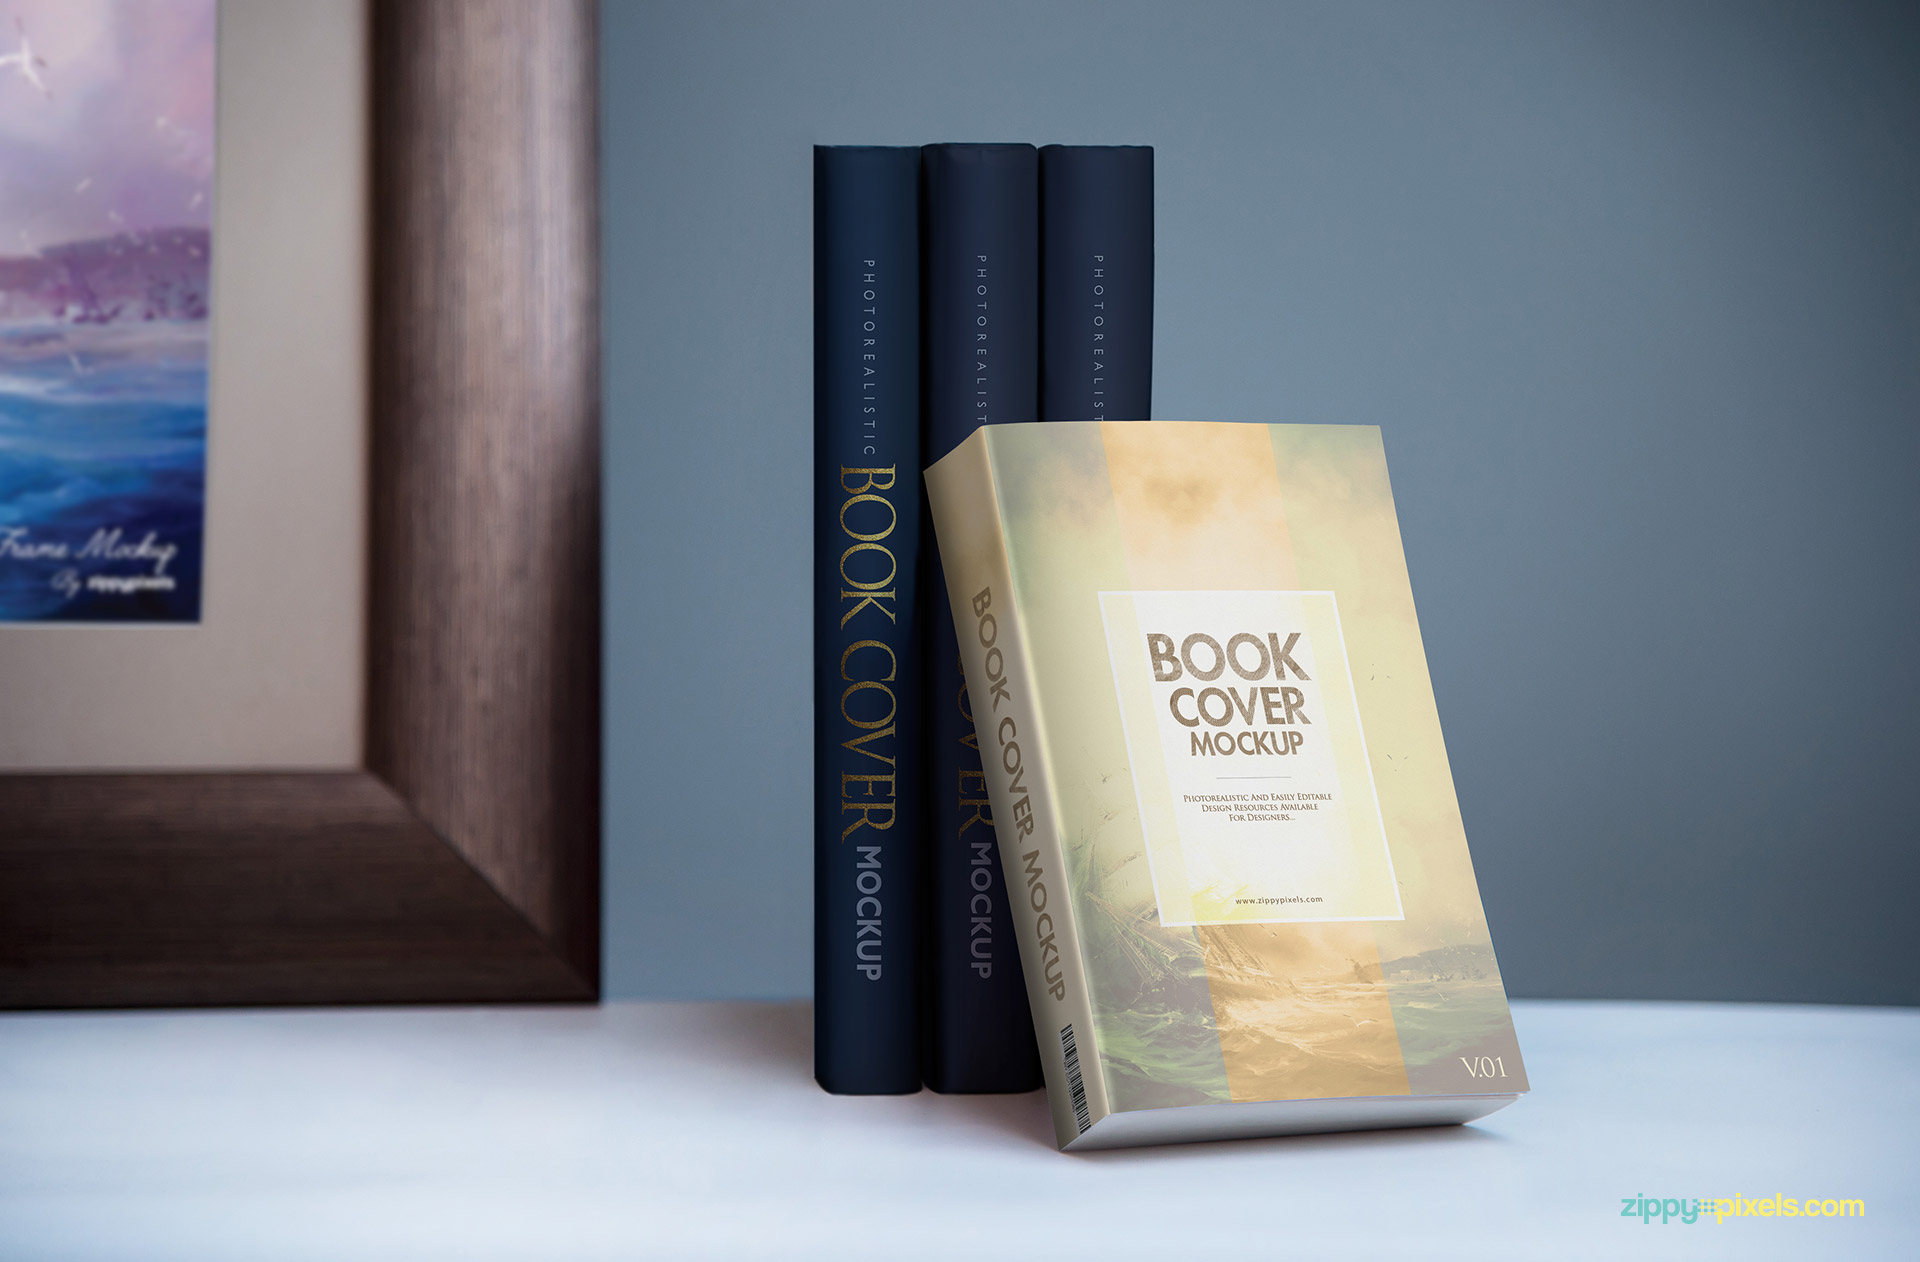 Softcover book cover mockup with hardcover books